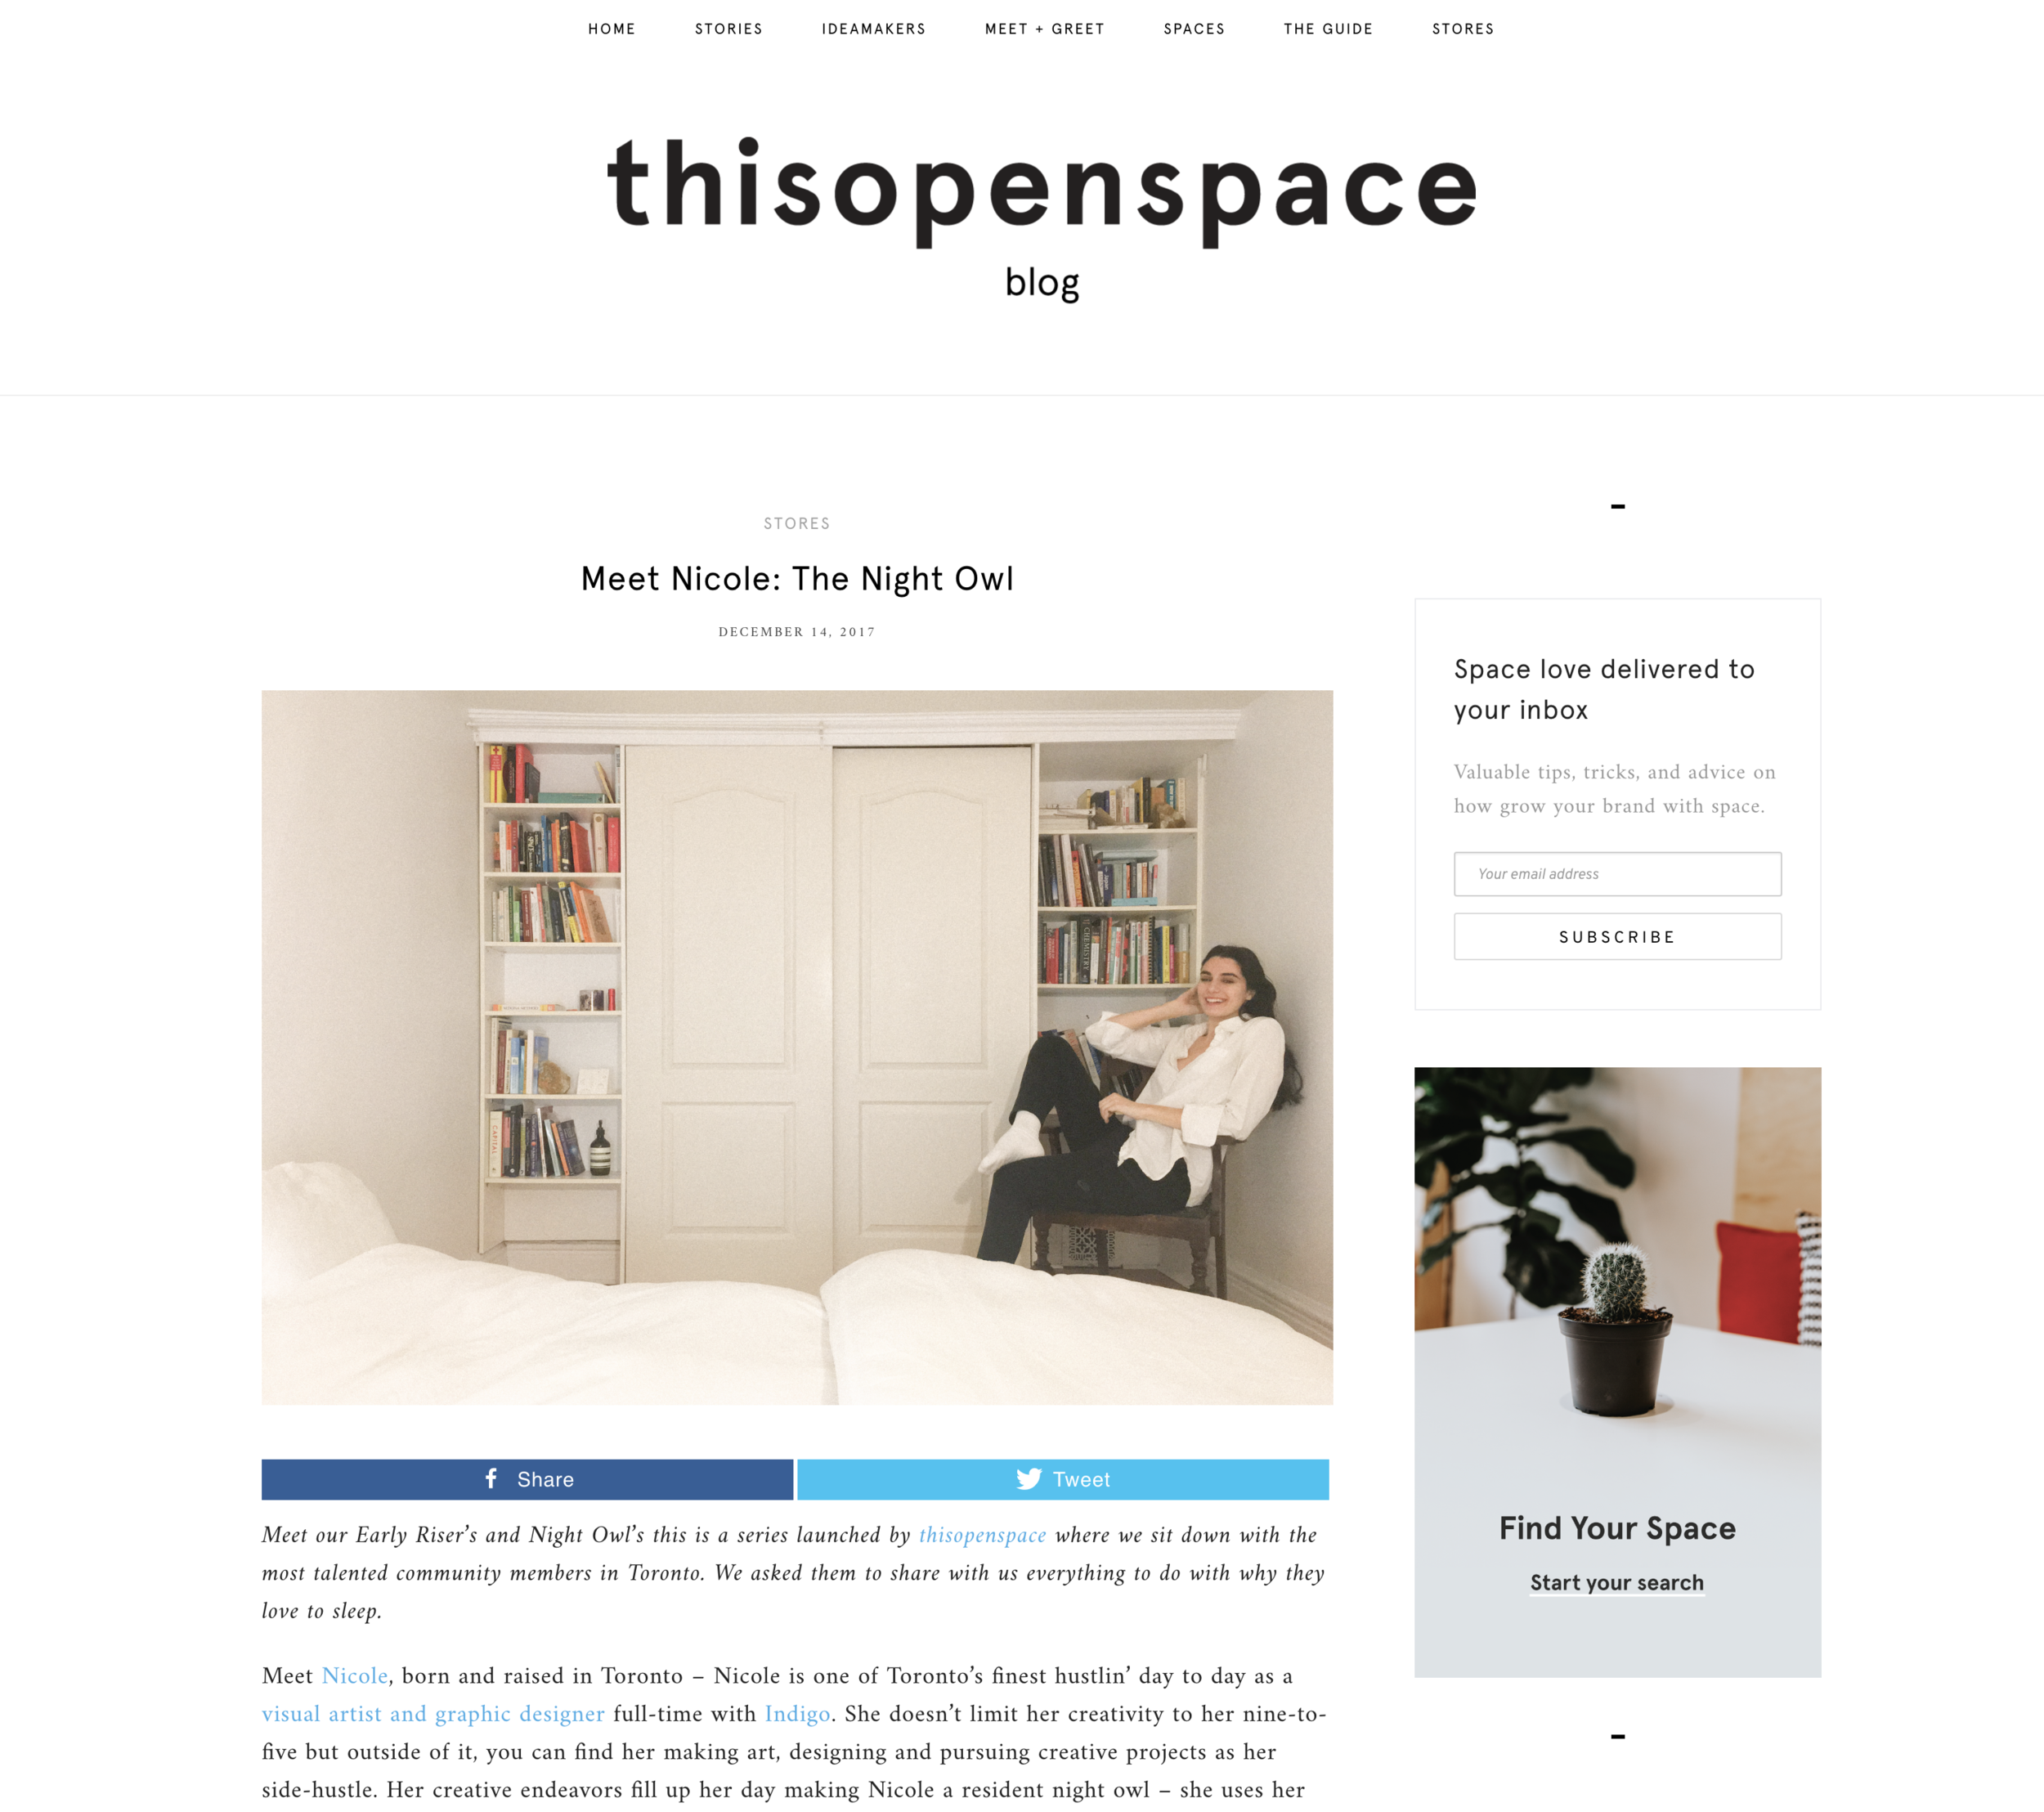 thisopenspace, 2017